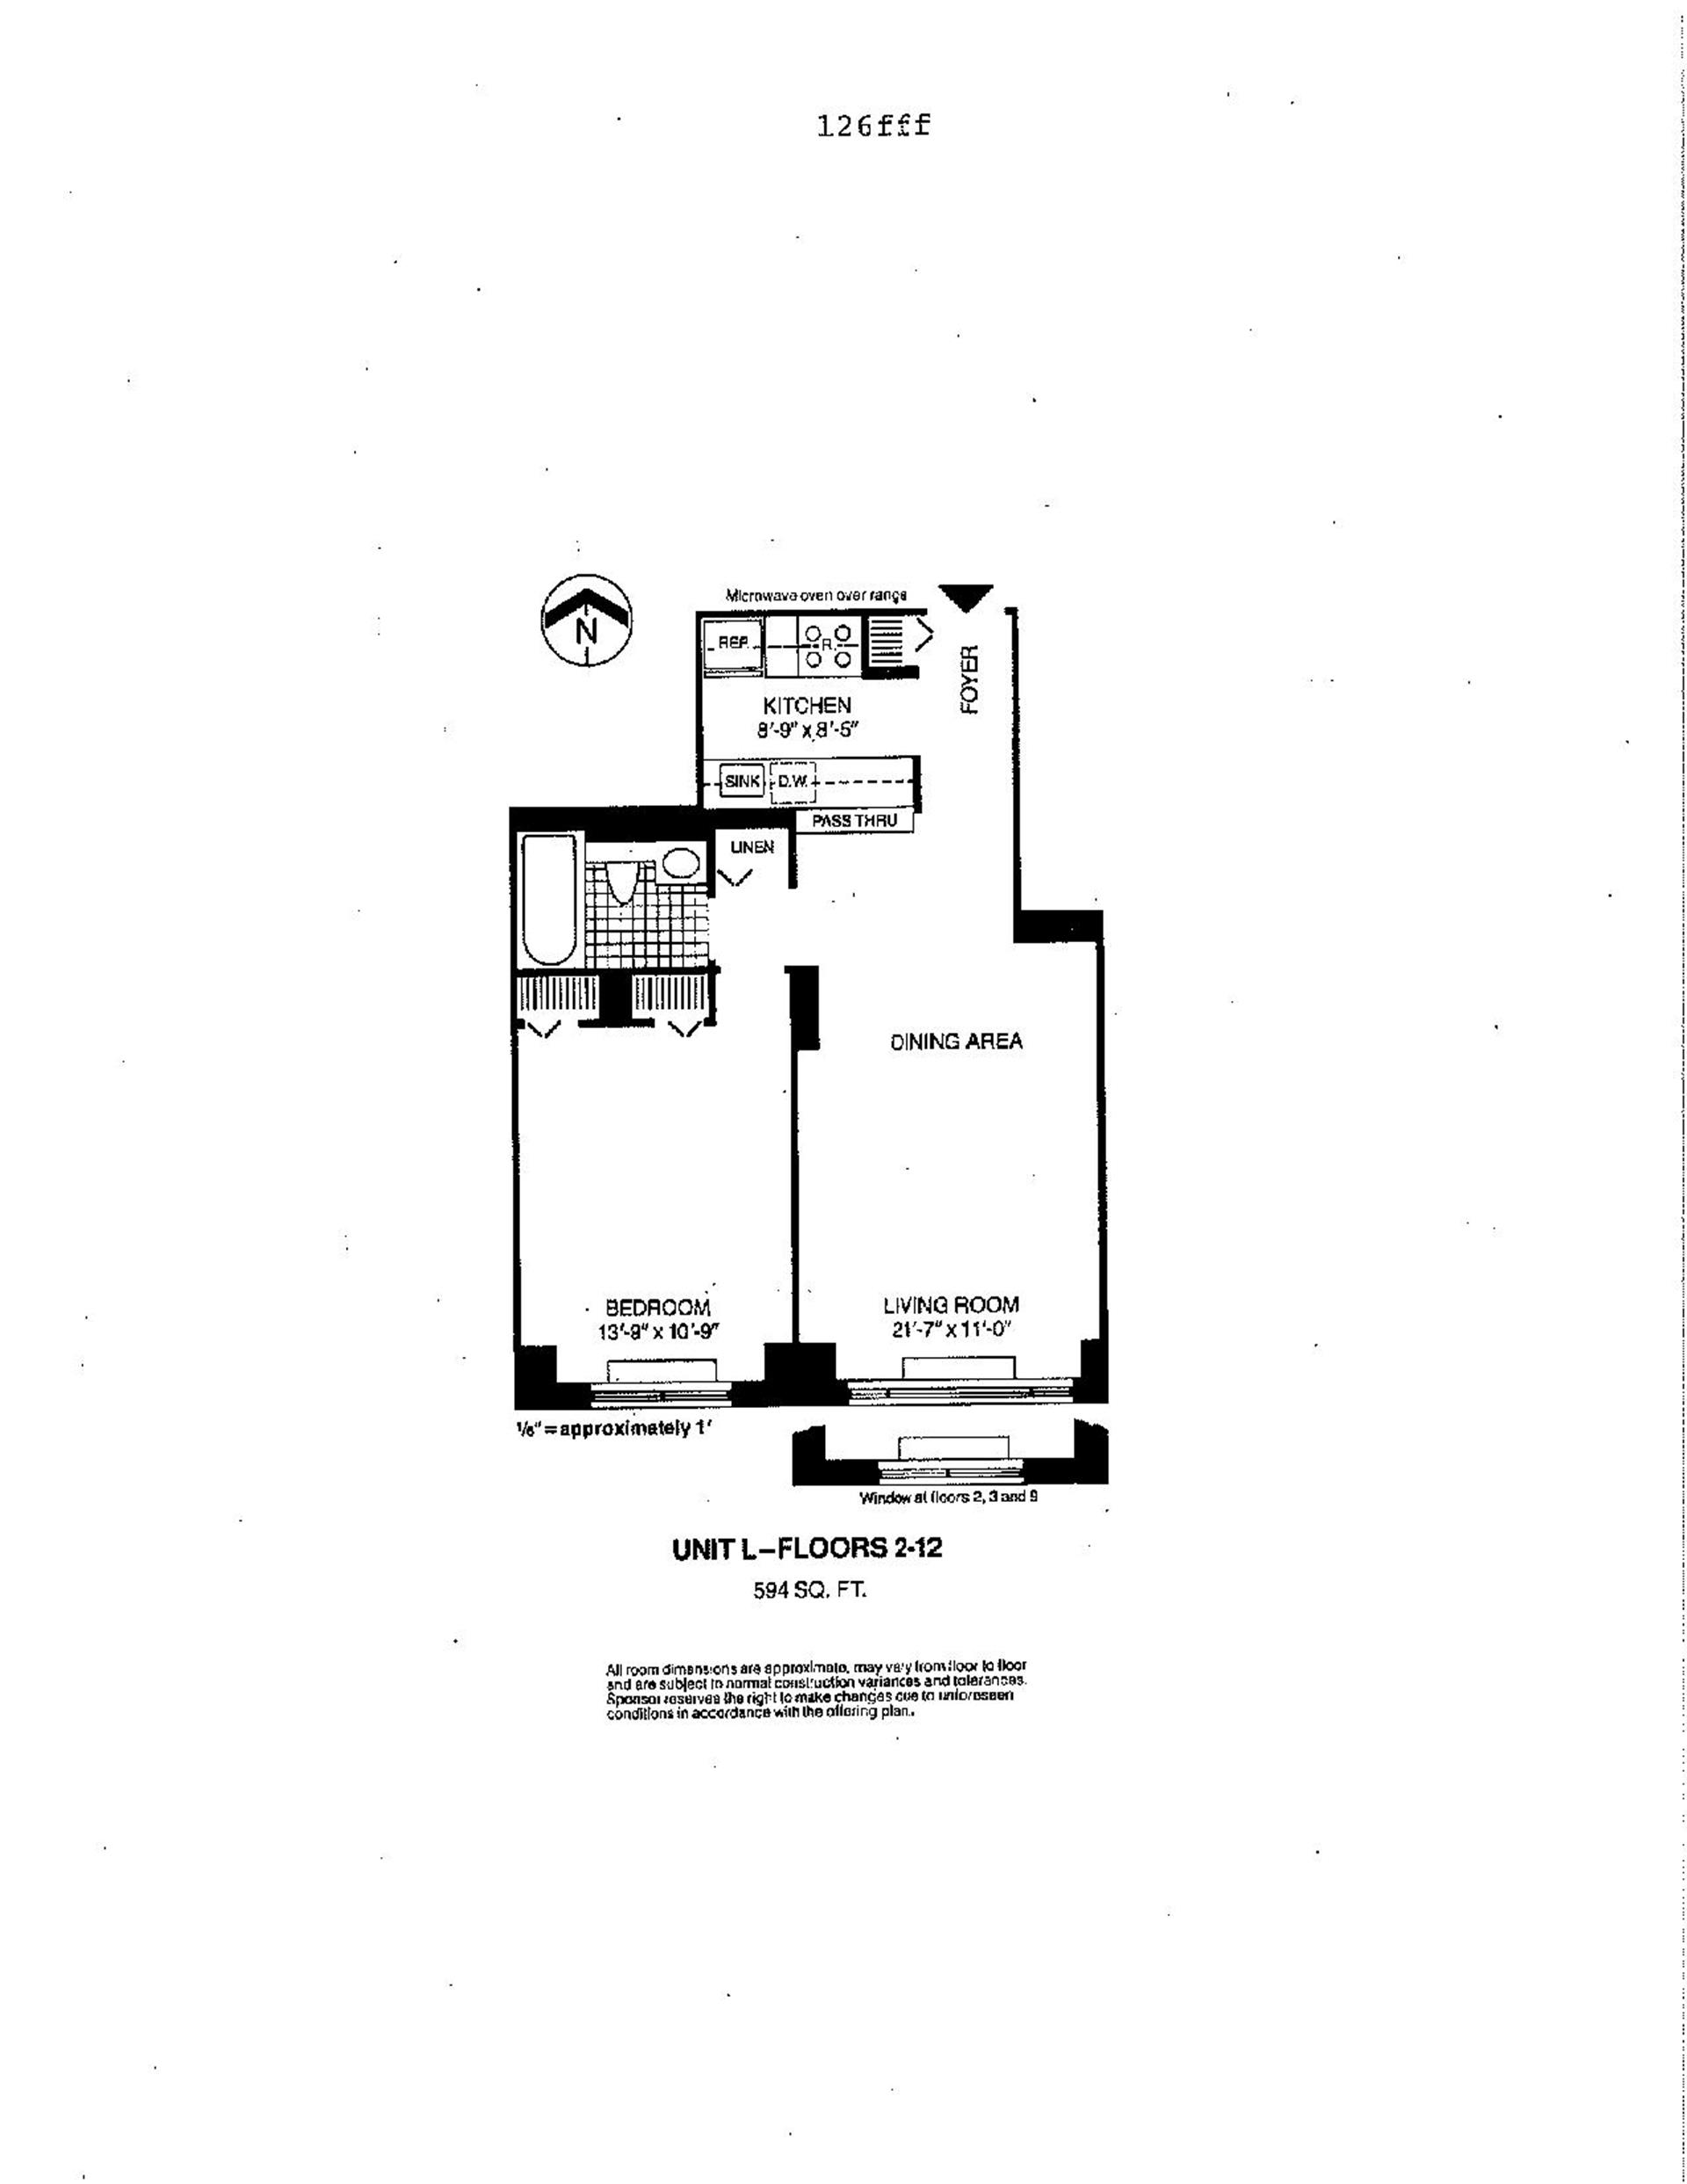 Floor plan of Liberty Residences, 377 Rector Pl, 10L - Battery Park City, New York